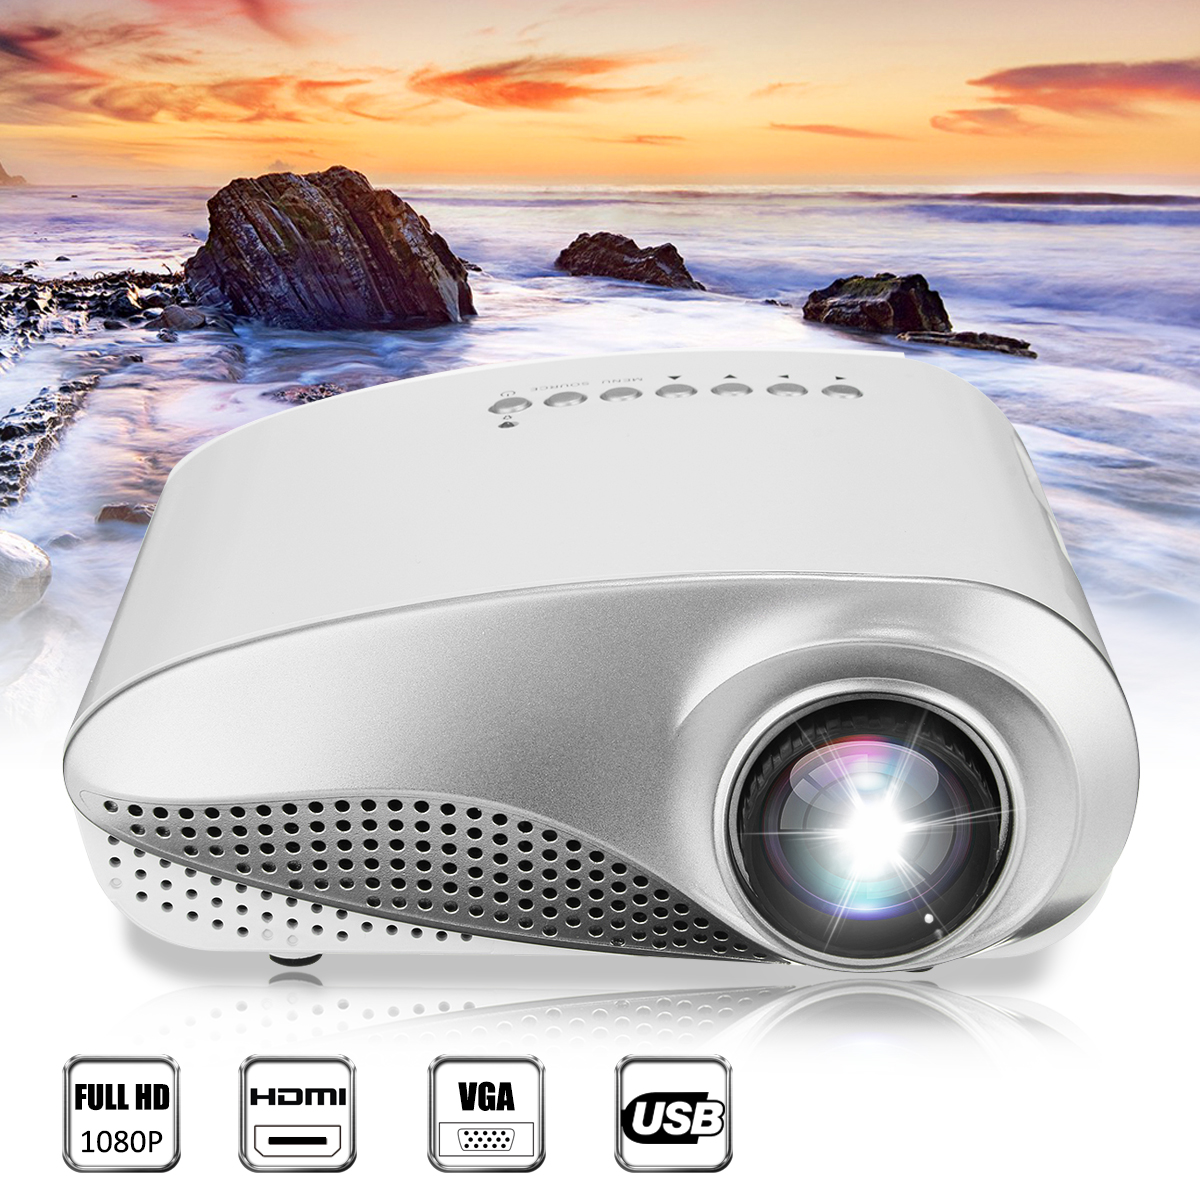 3D 1080P Portable LCD LED Mini Projector 600 Lumens 480x320 USB VGA TV AV Office Home Theater